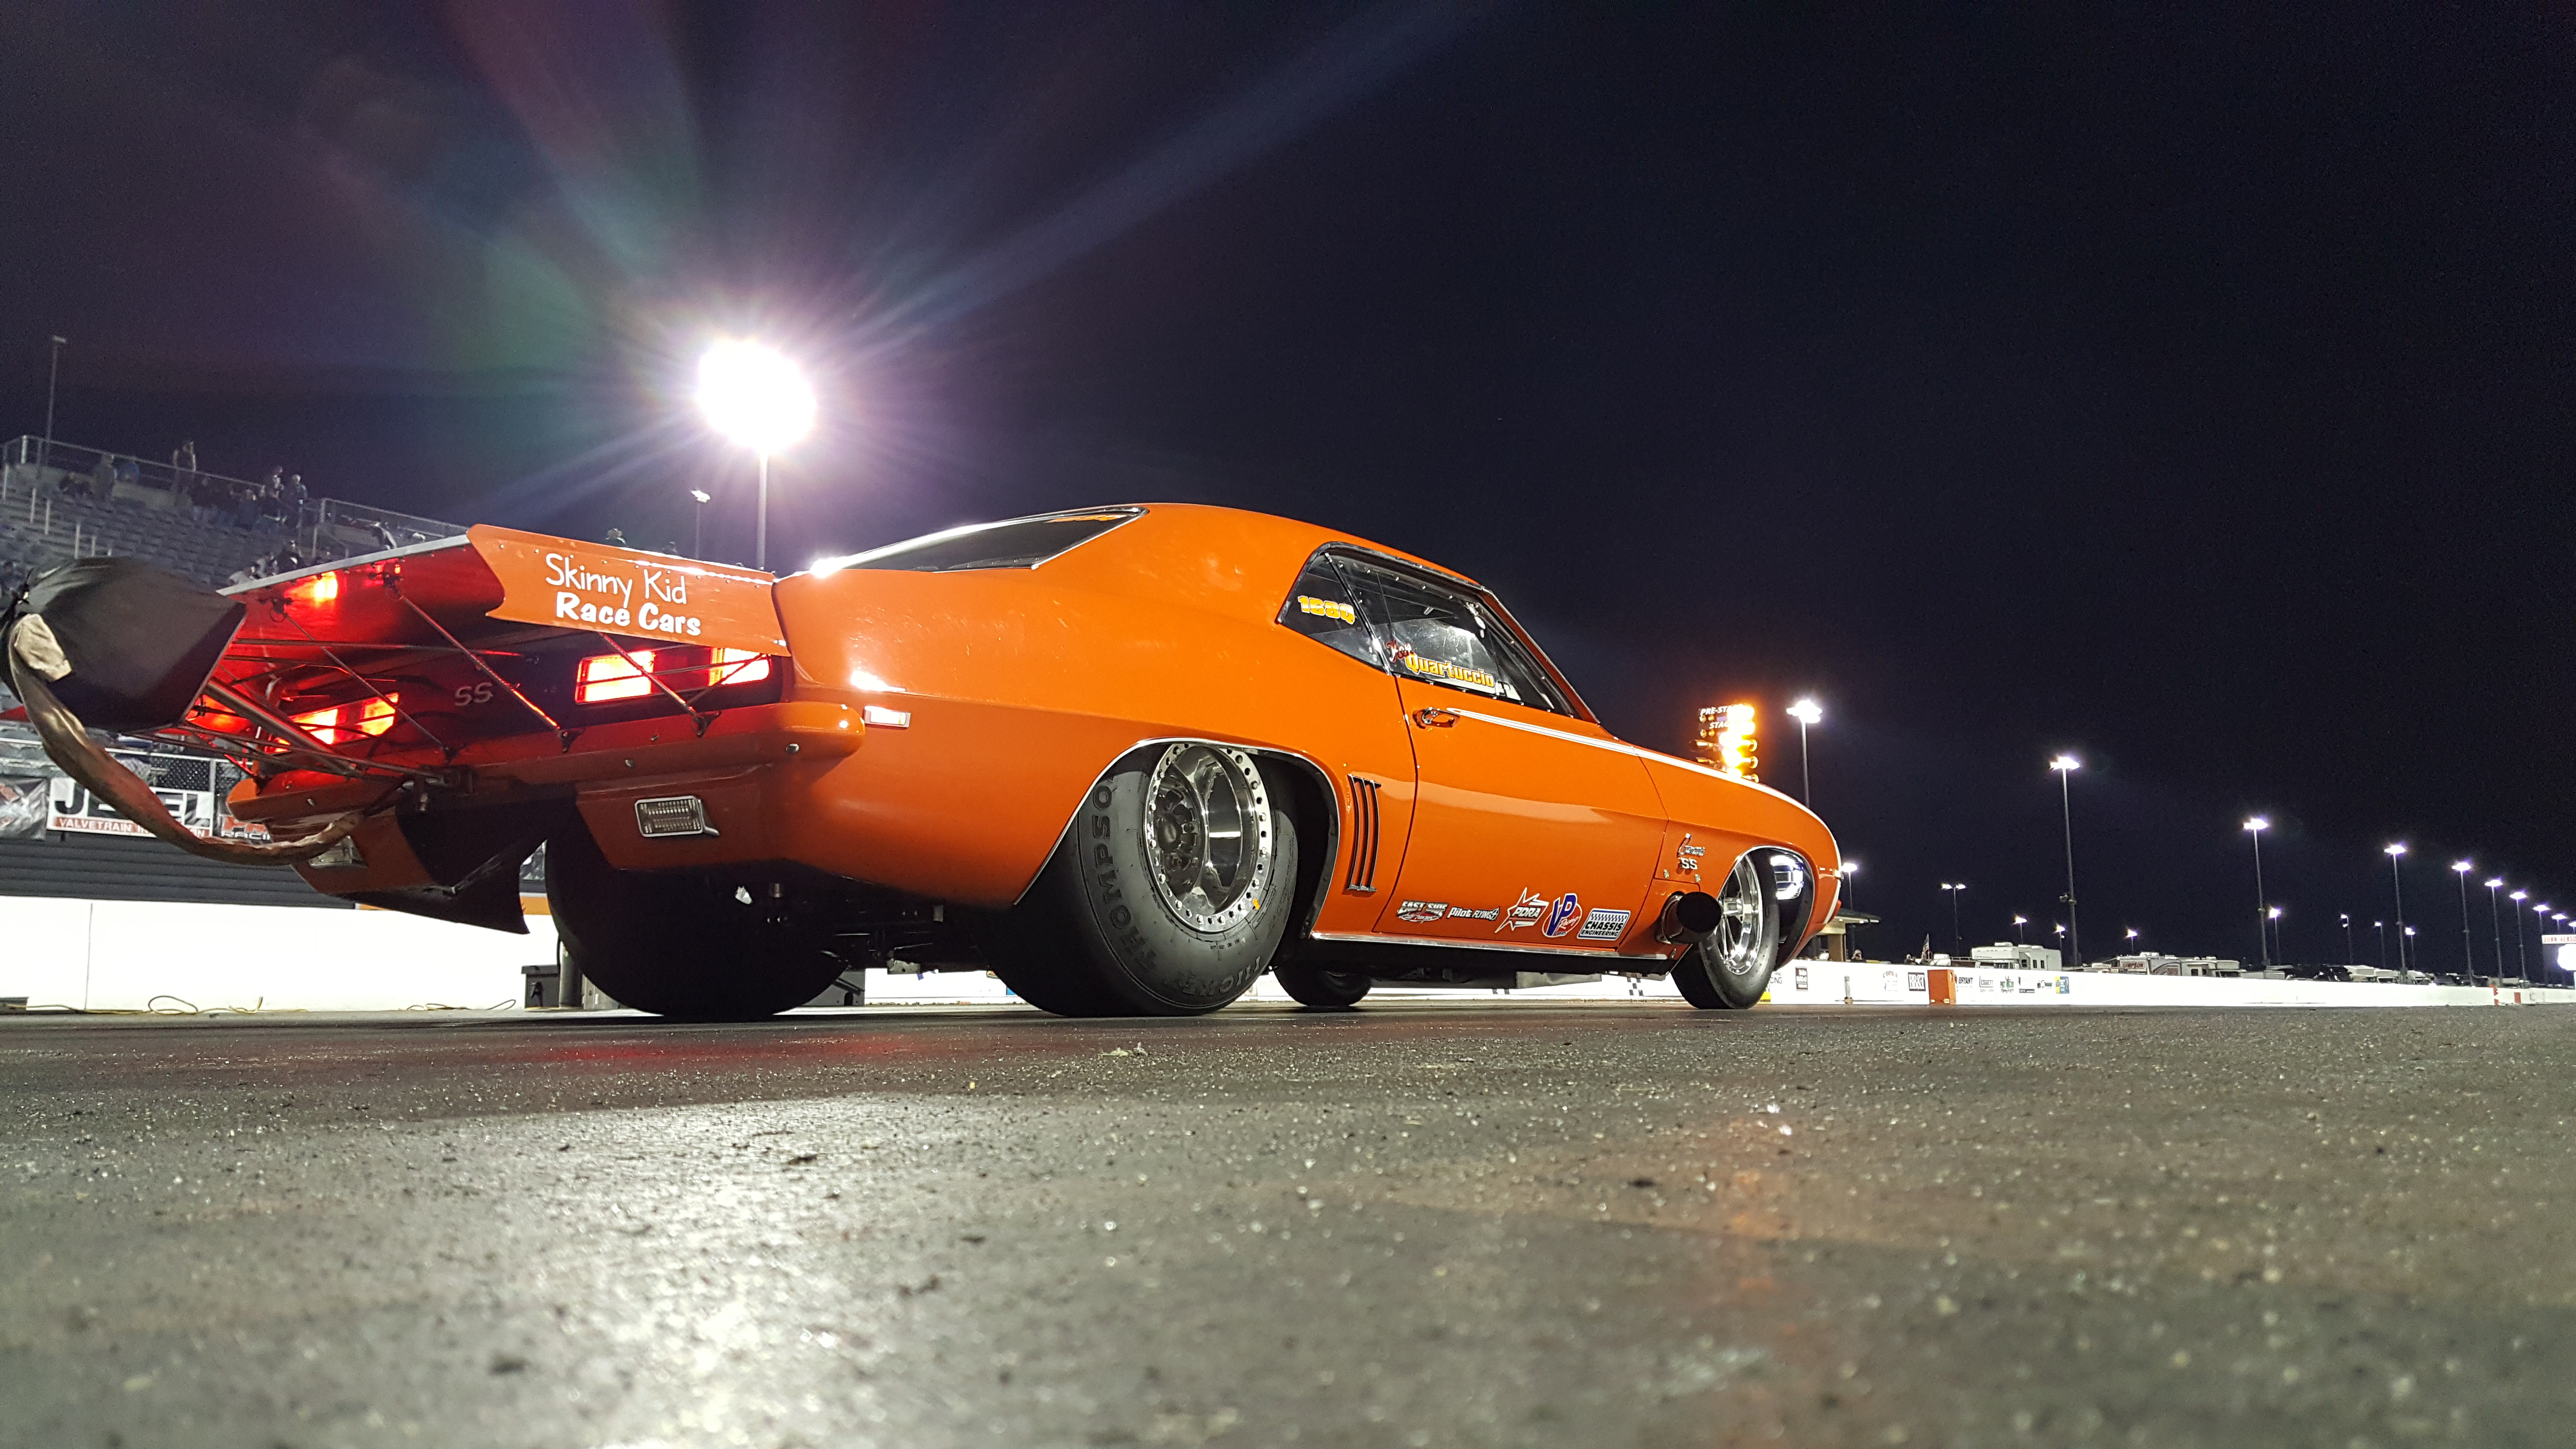 The Professional Drag Racers confirmed the Outlaw 632 category will be a  part of the PDRA program again in 2018, with a fresh name, Pro 632.